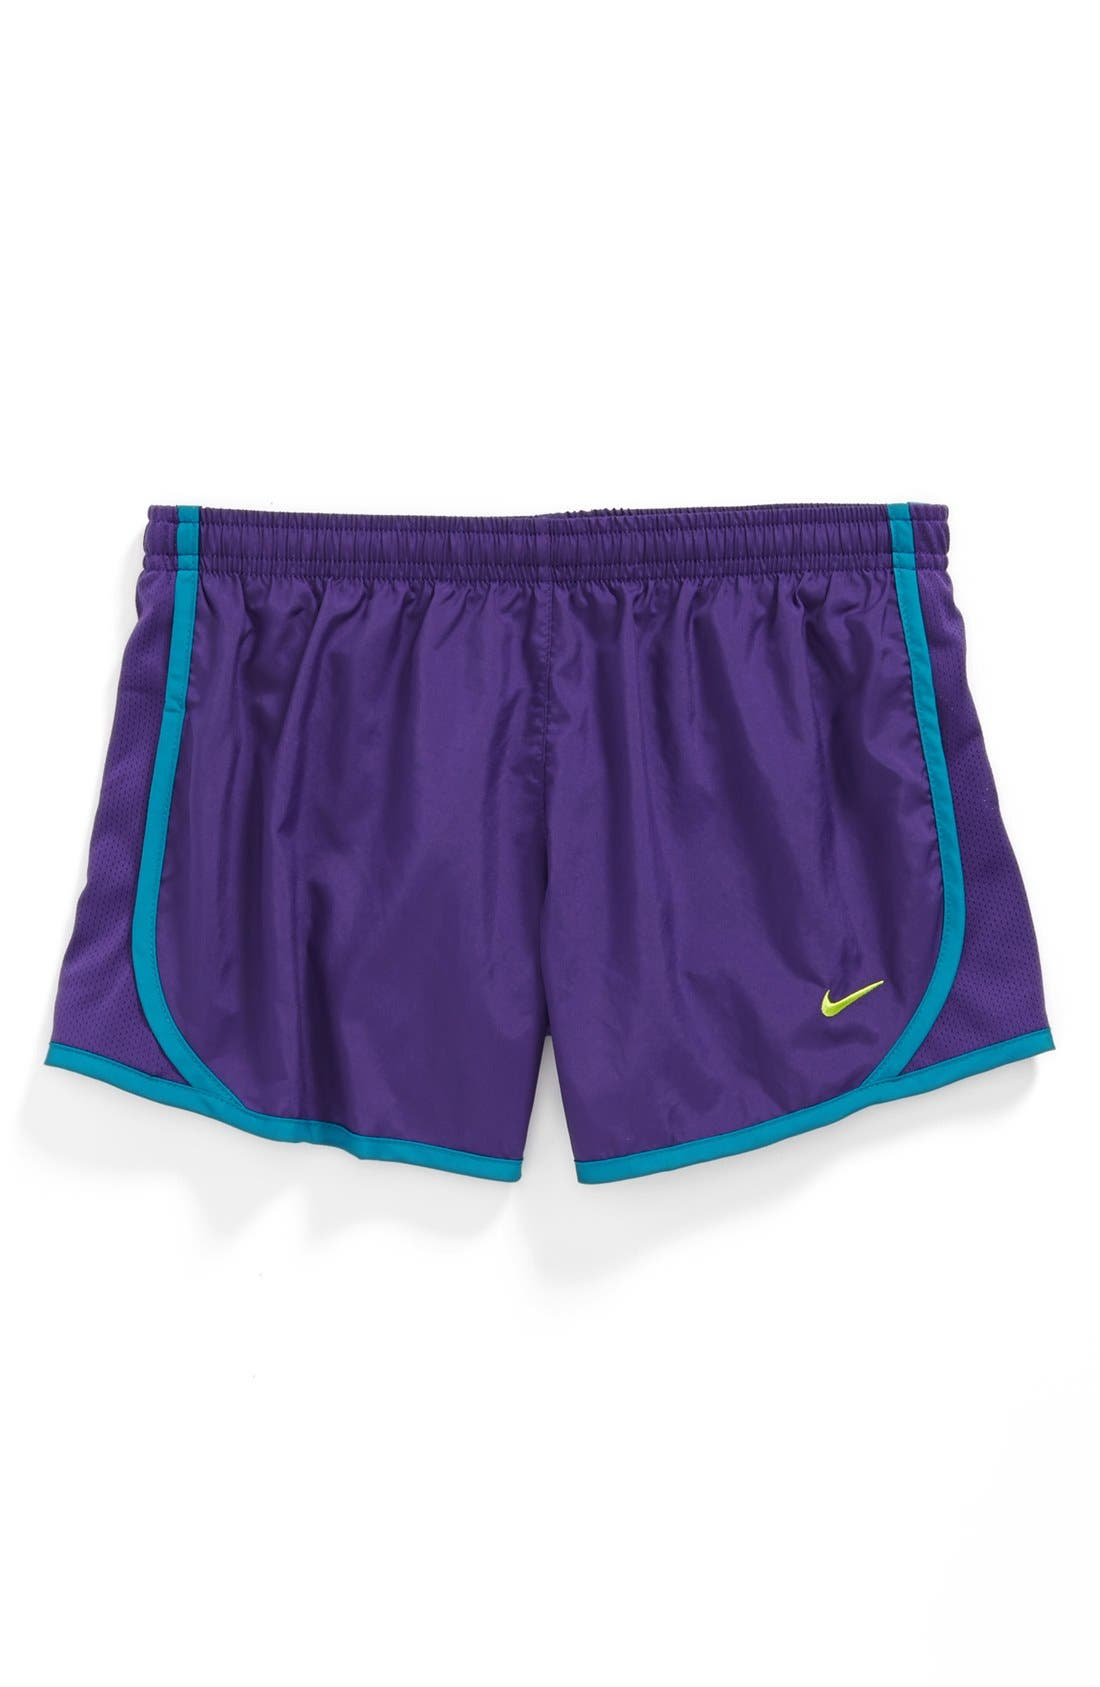 Main Image - Nike 'Tempo' Track Shorts (Little Girls & Big Girls)